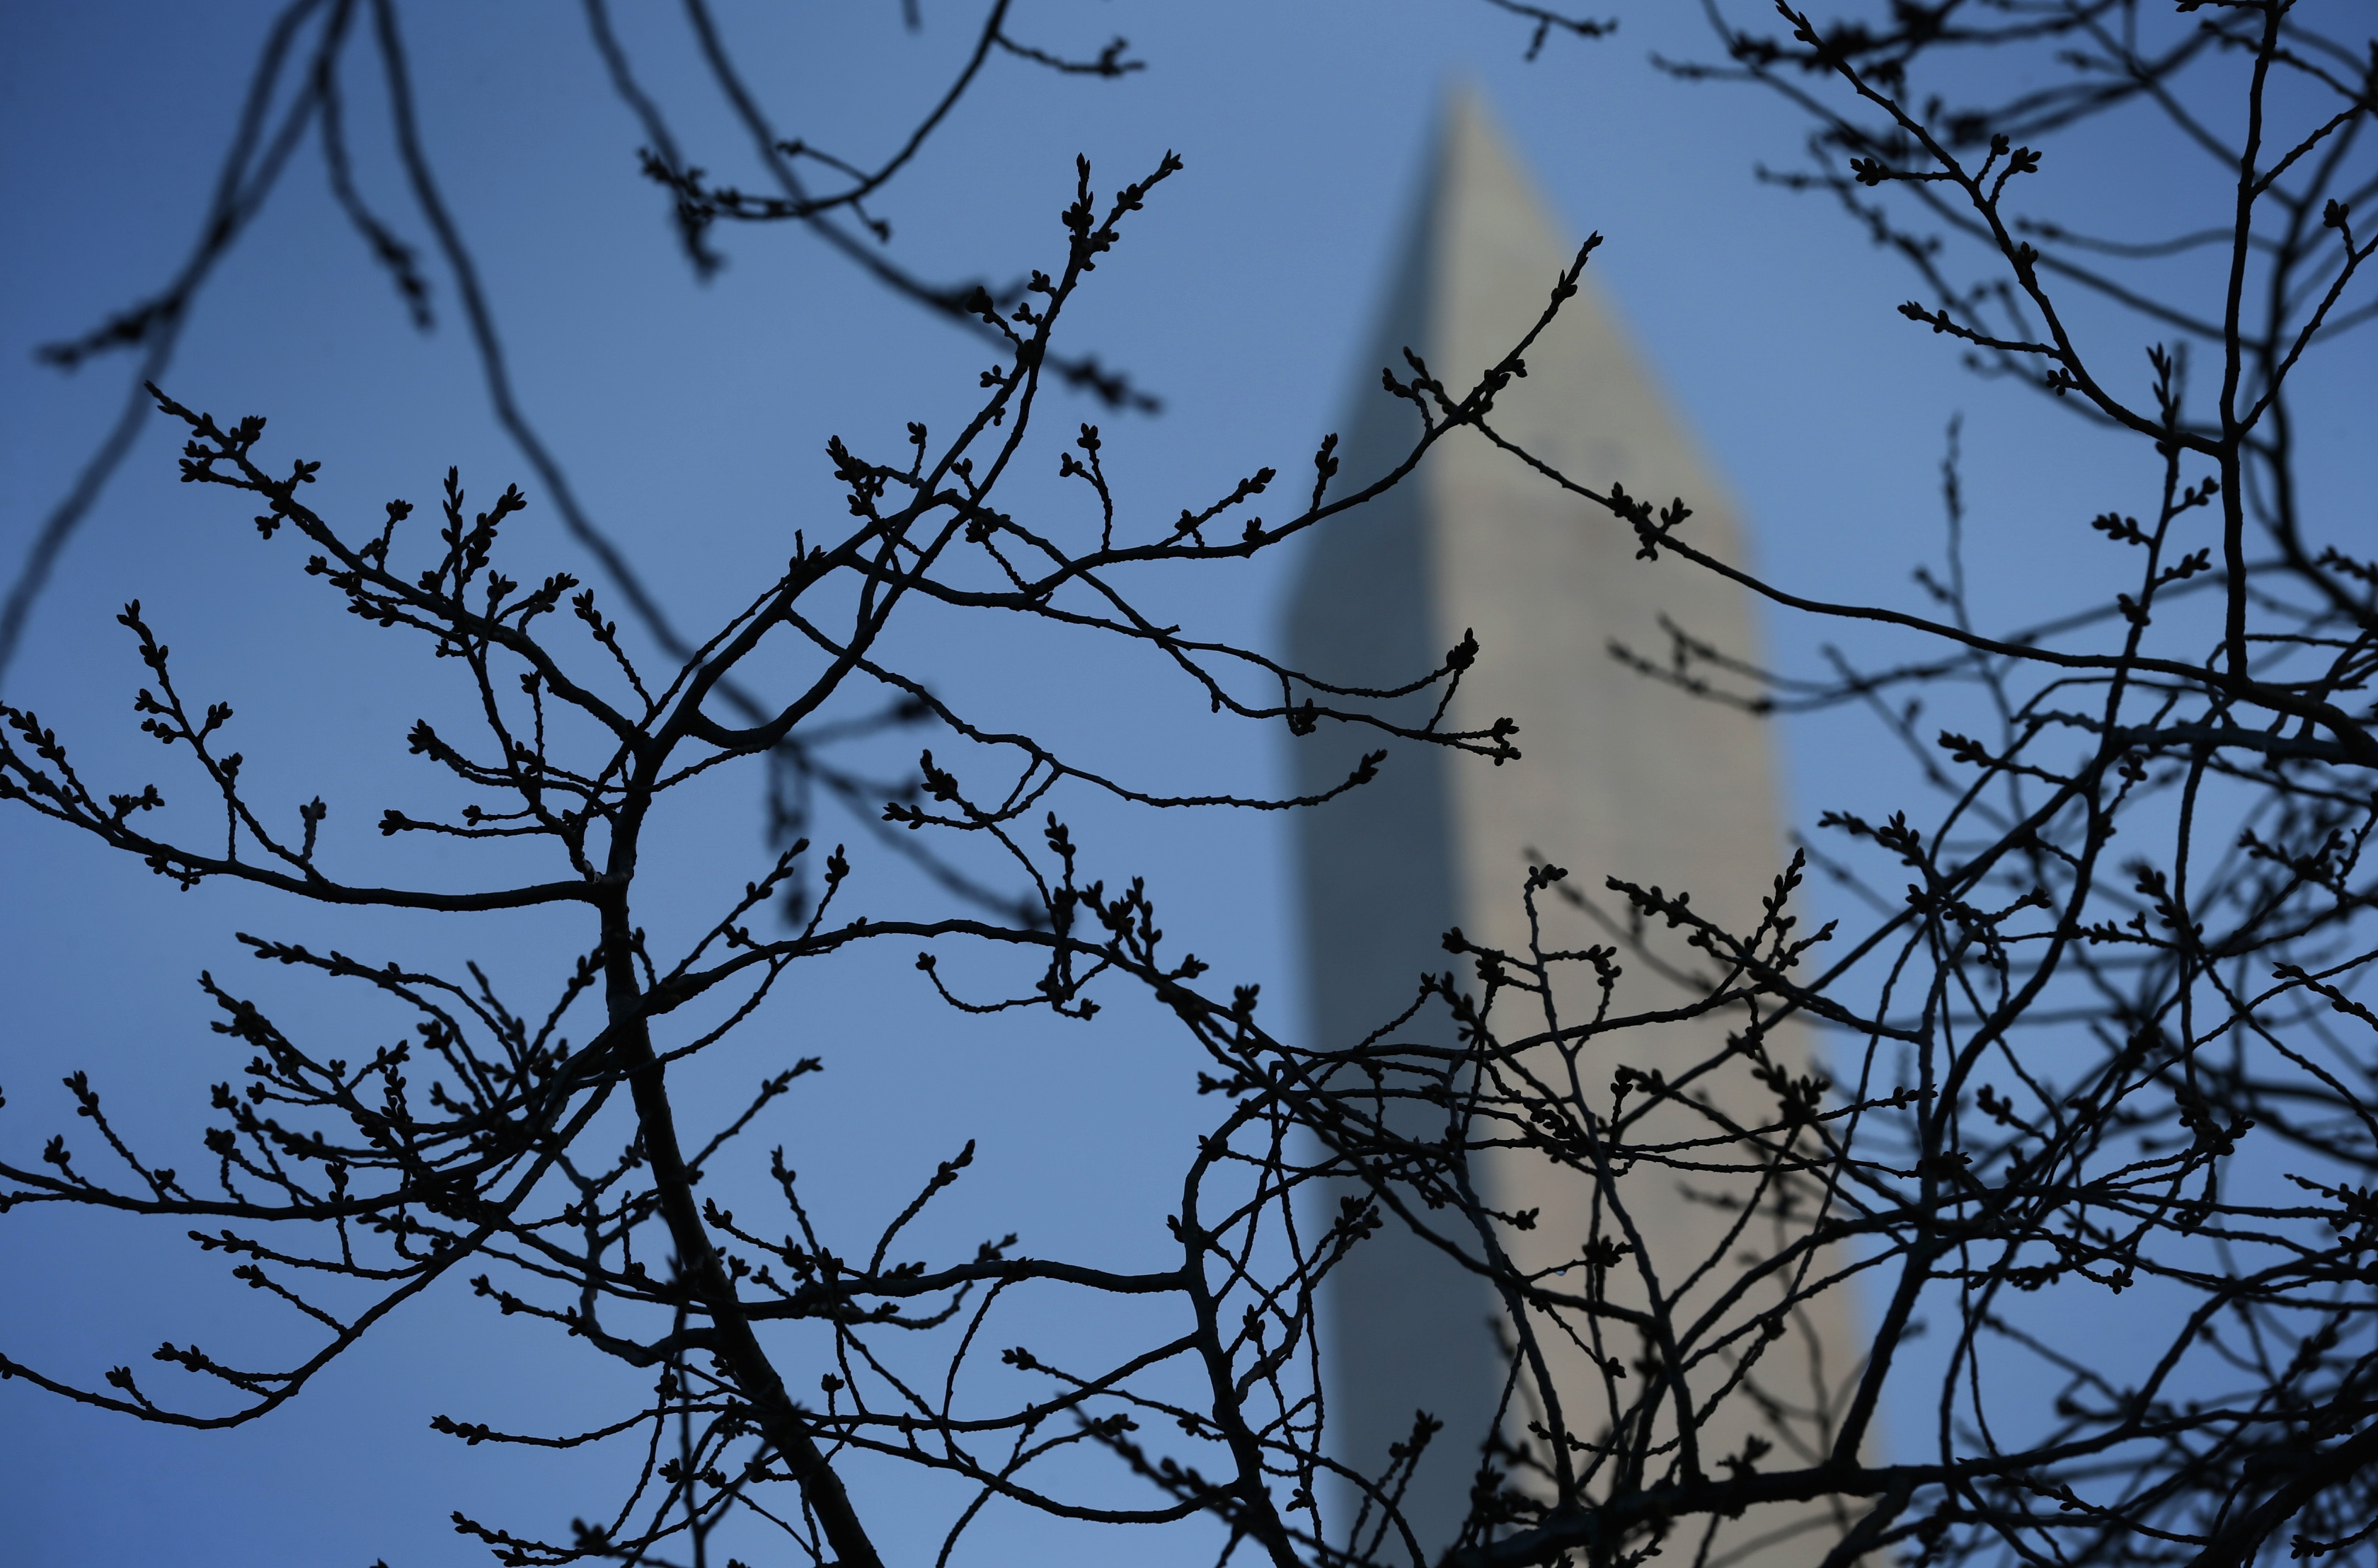 The Washington Monument, glimpsed on March 20—the first day of spring